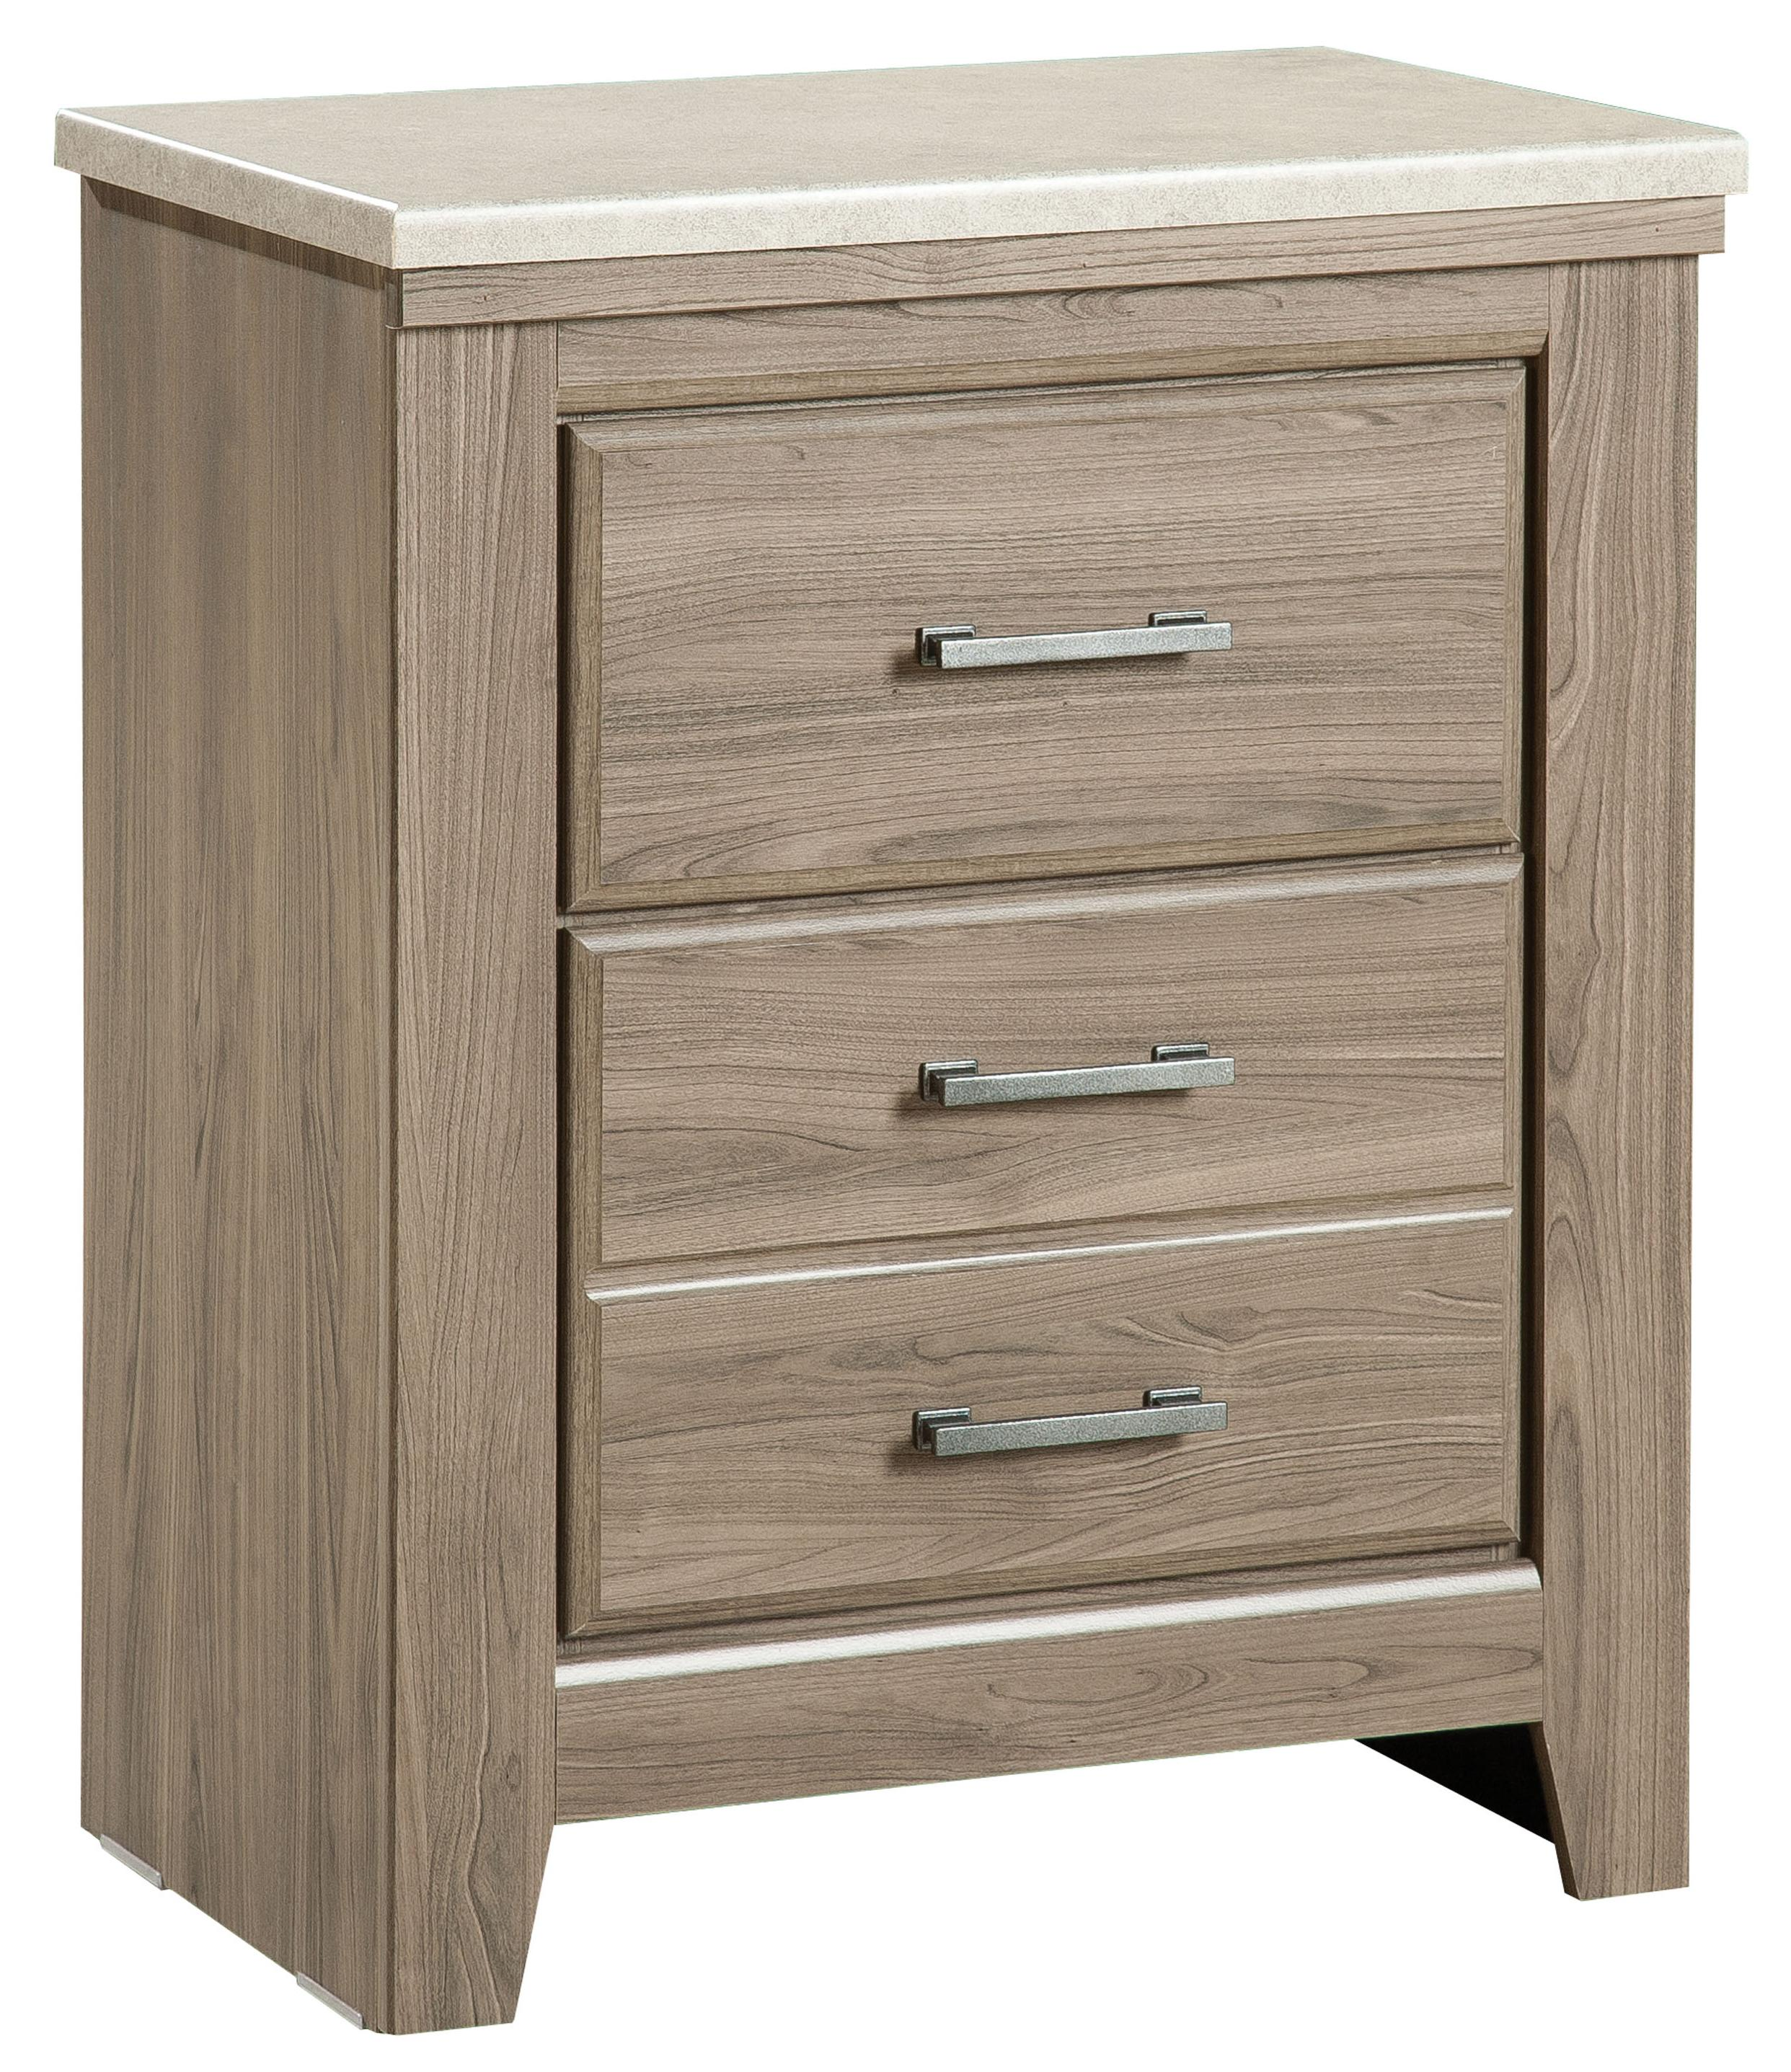 Standard Furniture Stonehill Nightstand - Item Number: 69407